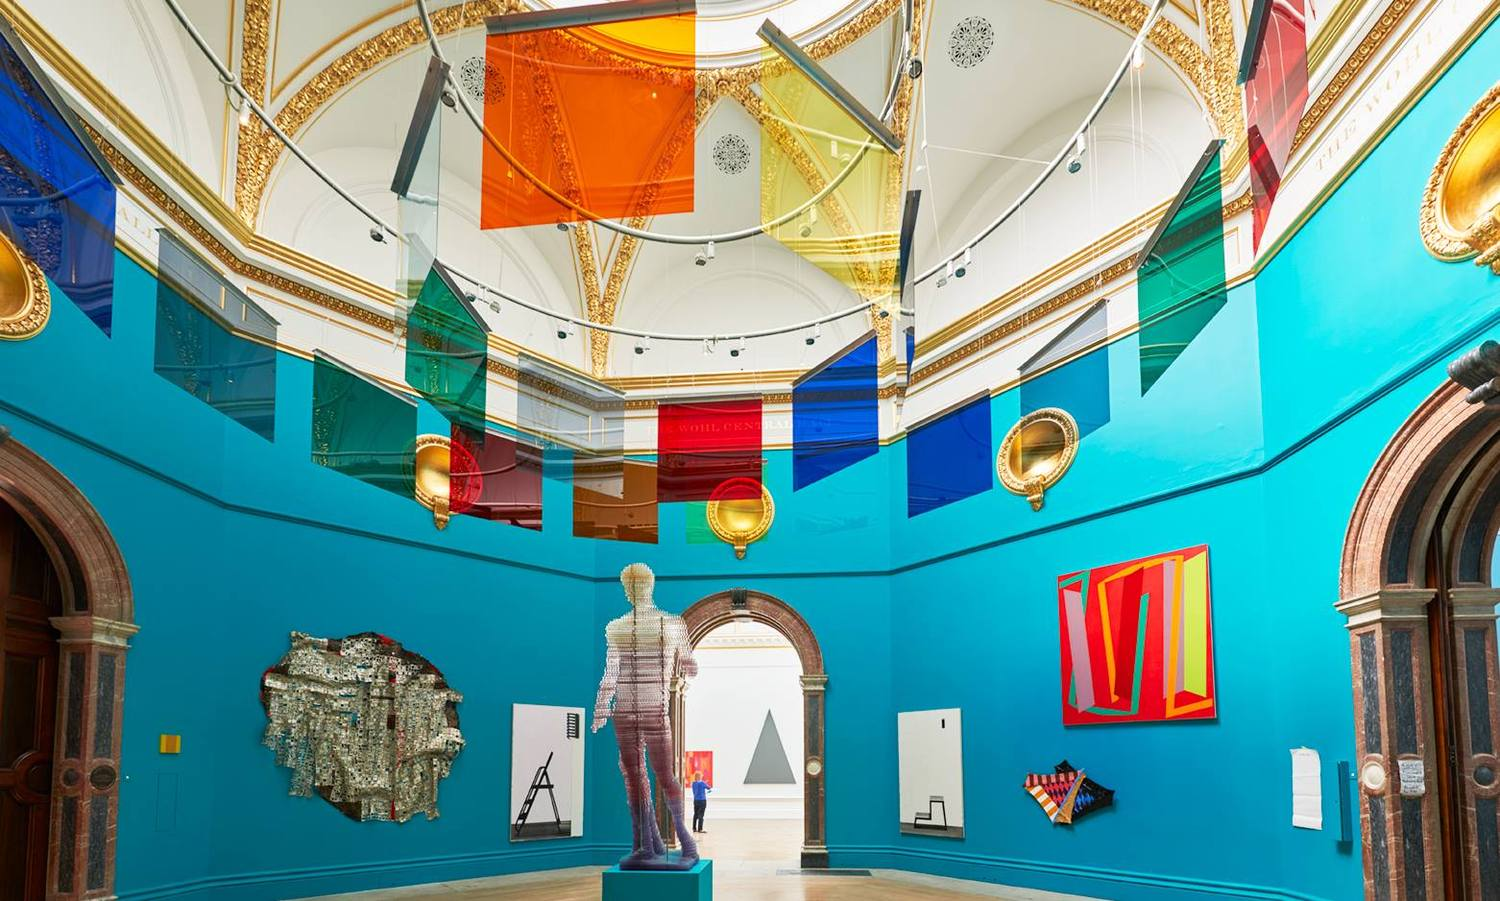 Wohl Central Hall During The Royal Academy Of Arts 2015 Summer Exhibition Visit RA To See Peter Cook Floating Ideas